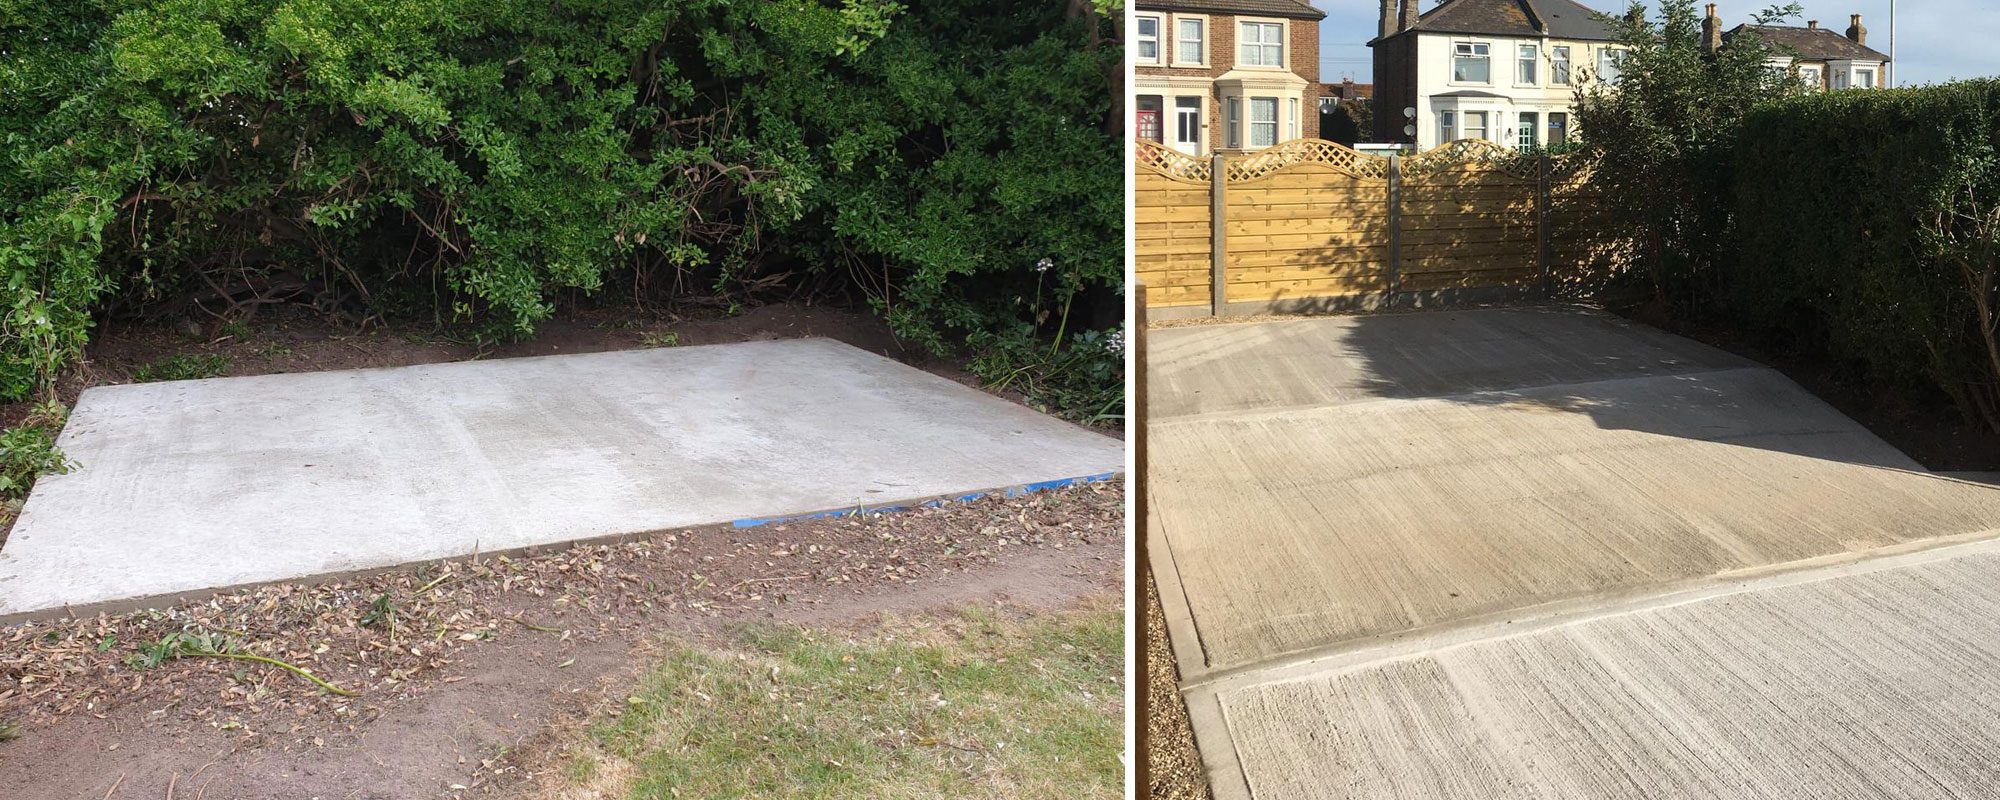 Concrete Base - Quality bases for your shed or extension